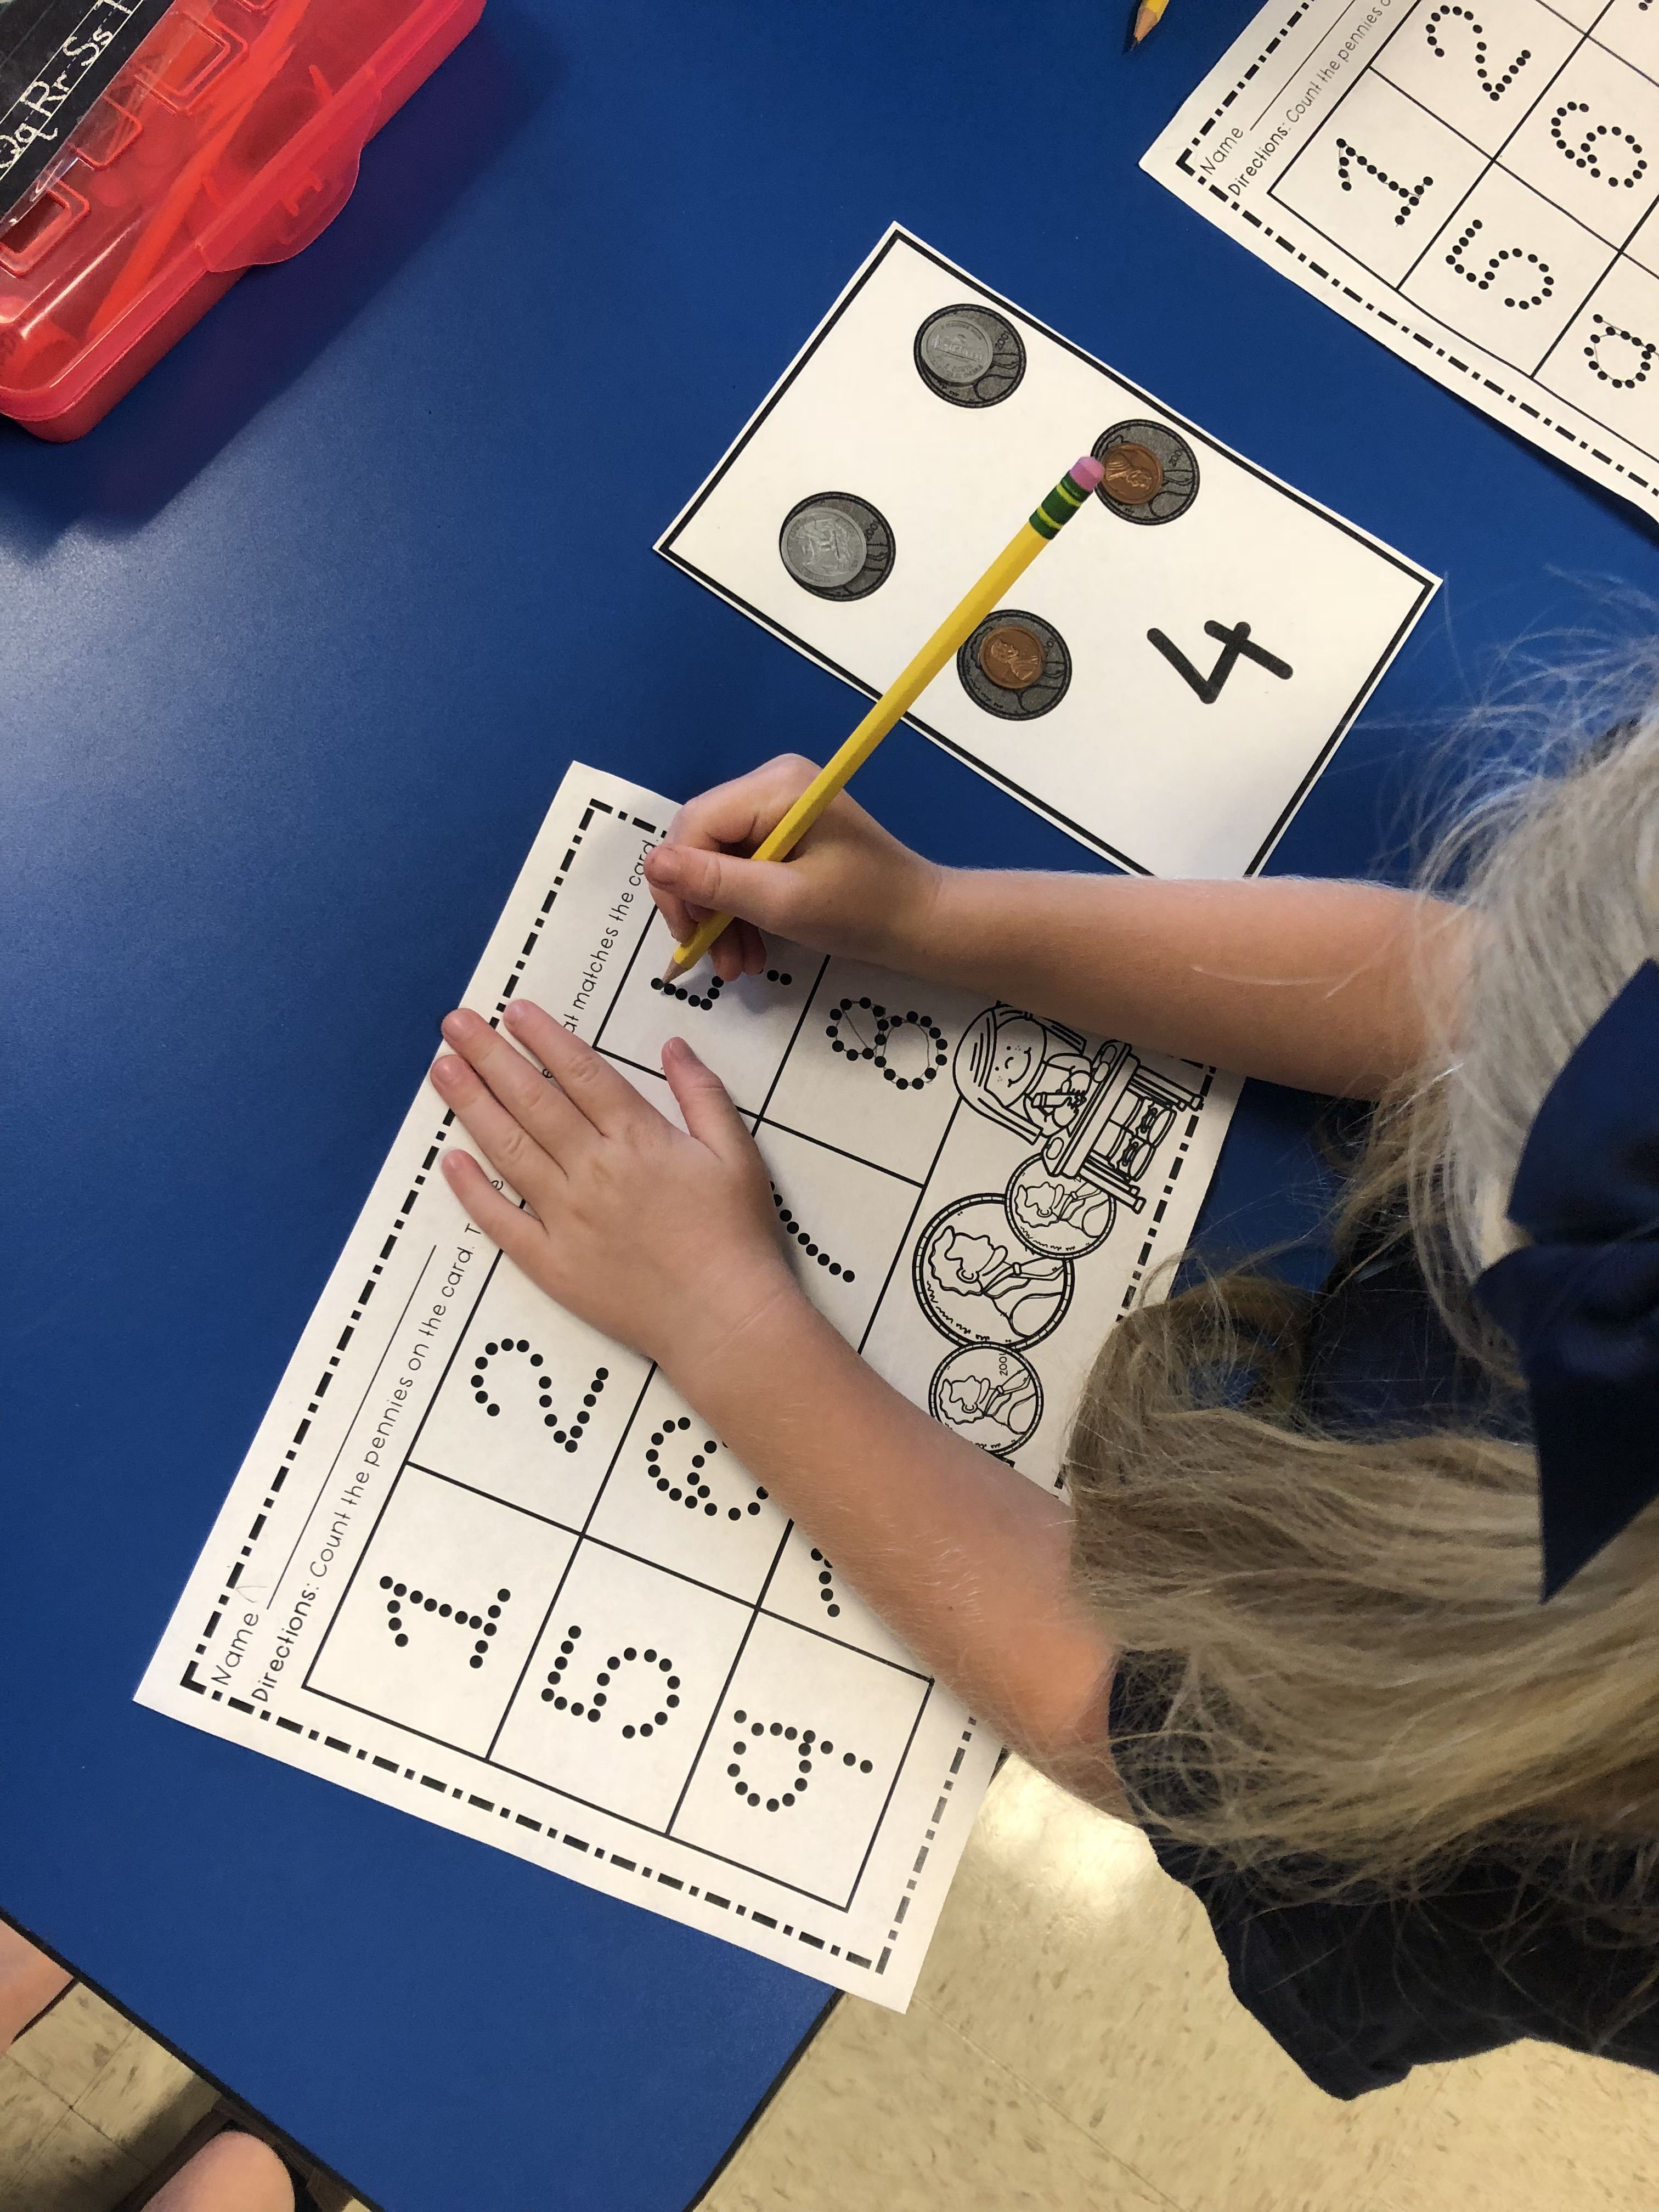 One To One Correspondence Counting With Math Manipulative